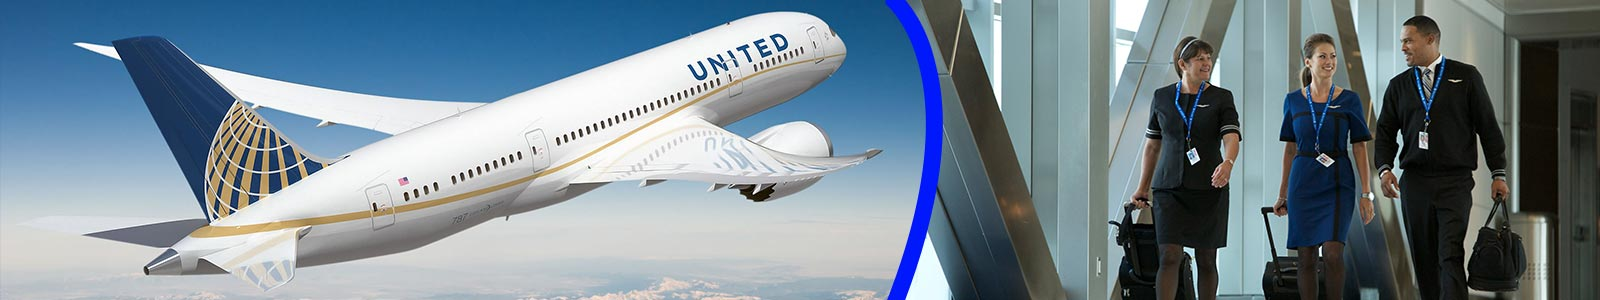 united-airlinesservice